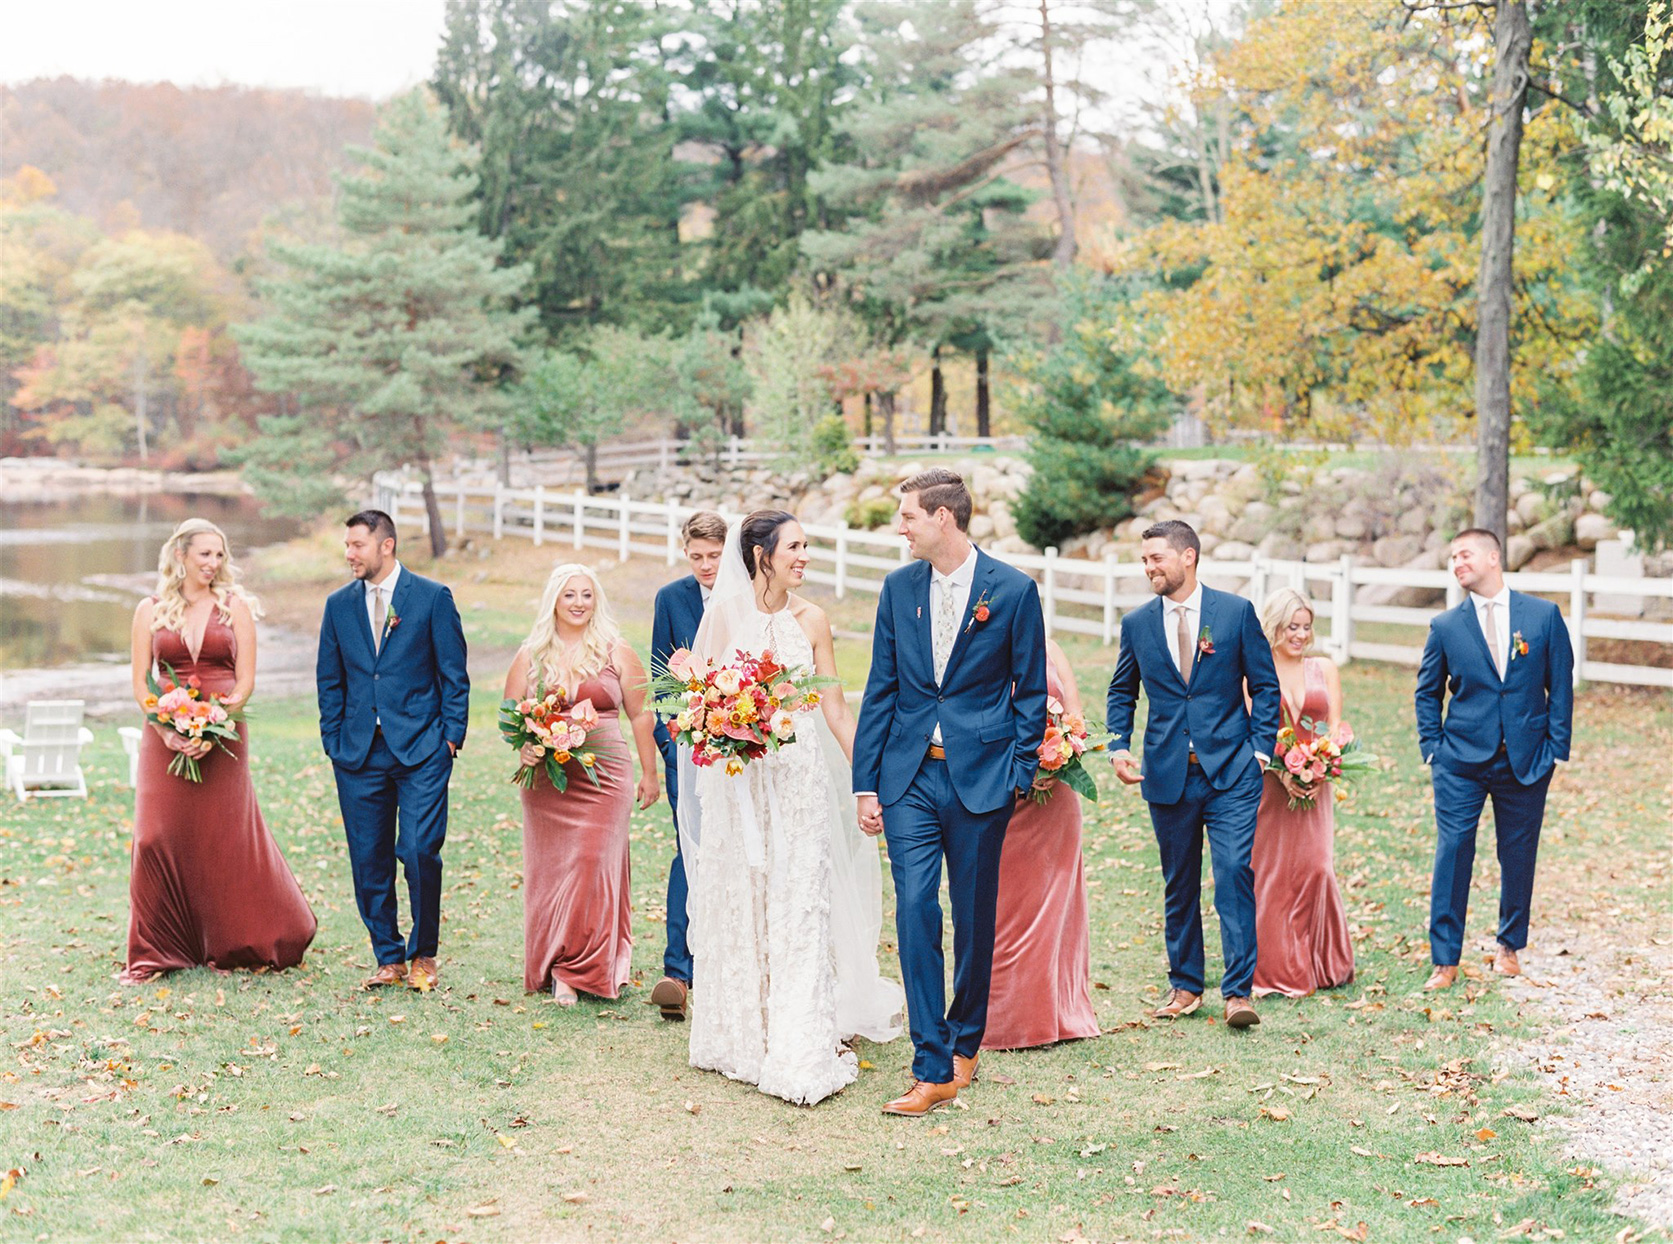 wedding party in red and blue walking with bride and groom by lake